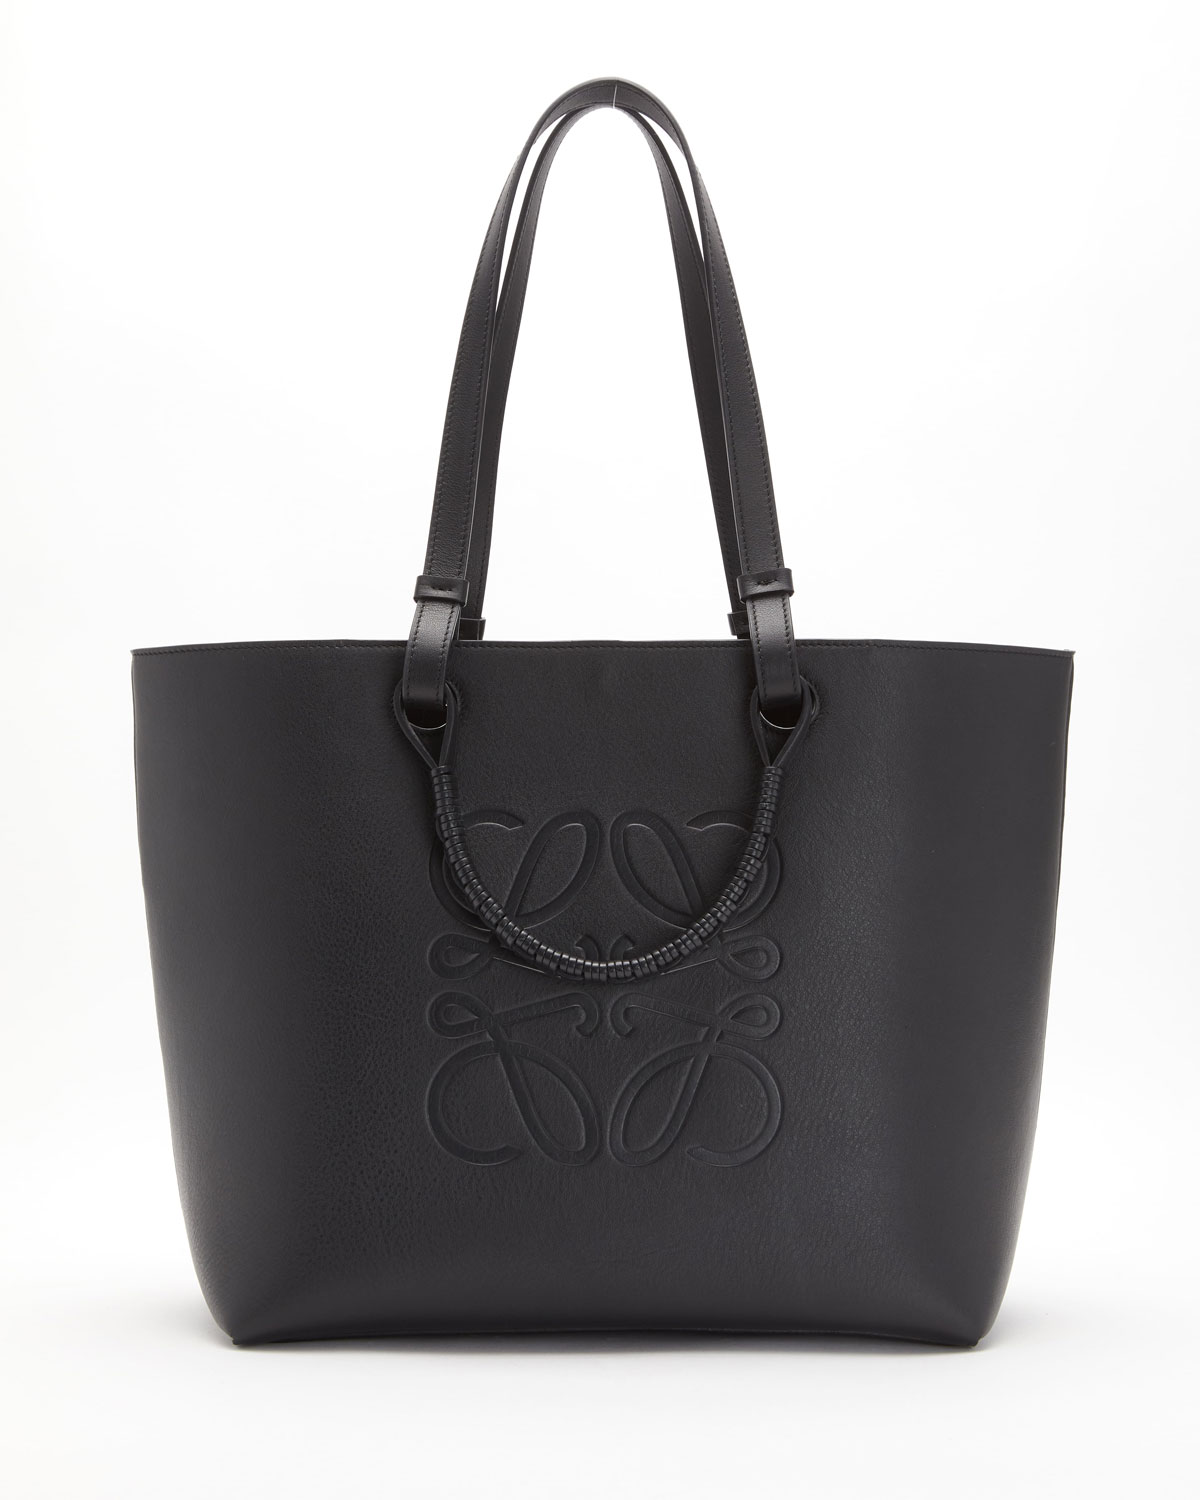 Anagram Classic Leather Tote Bag